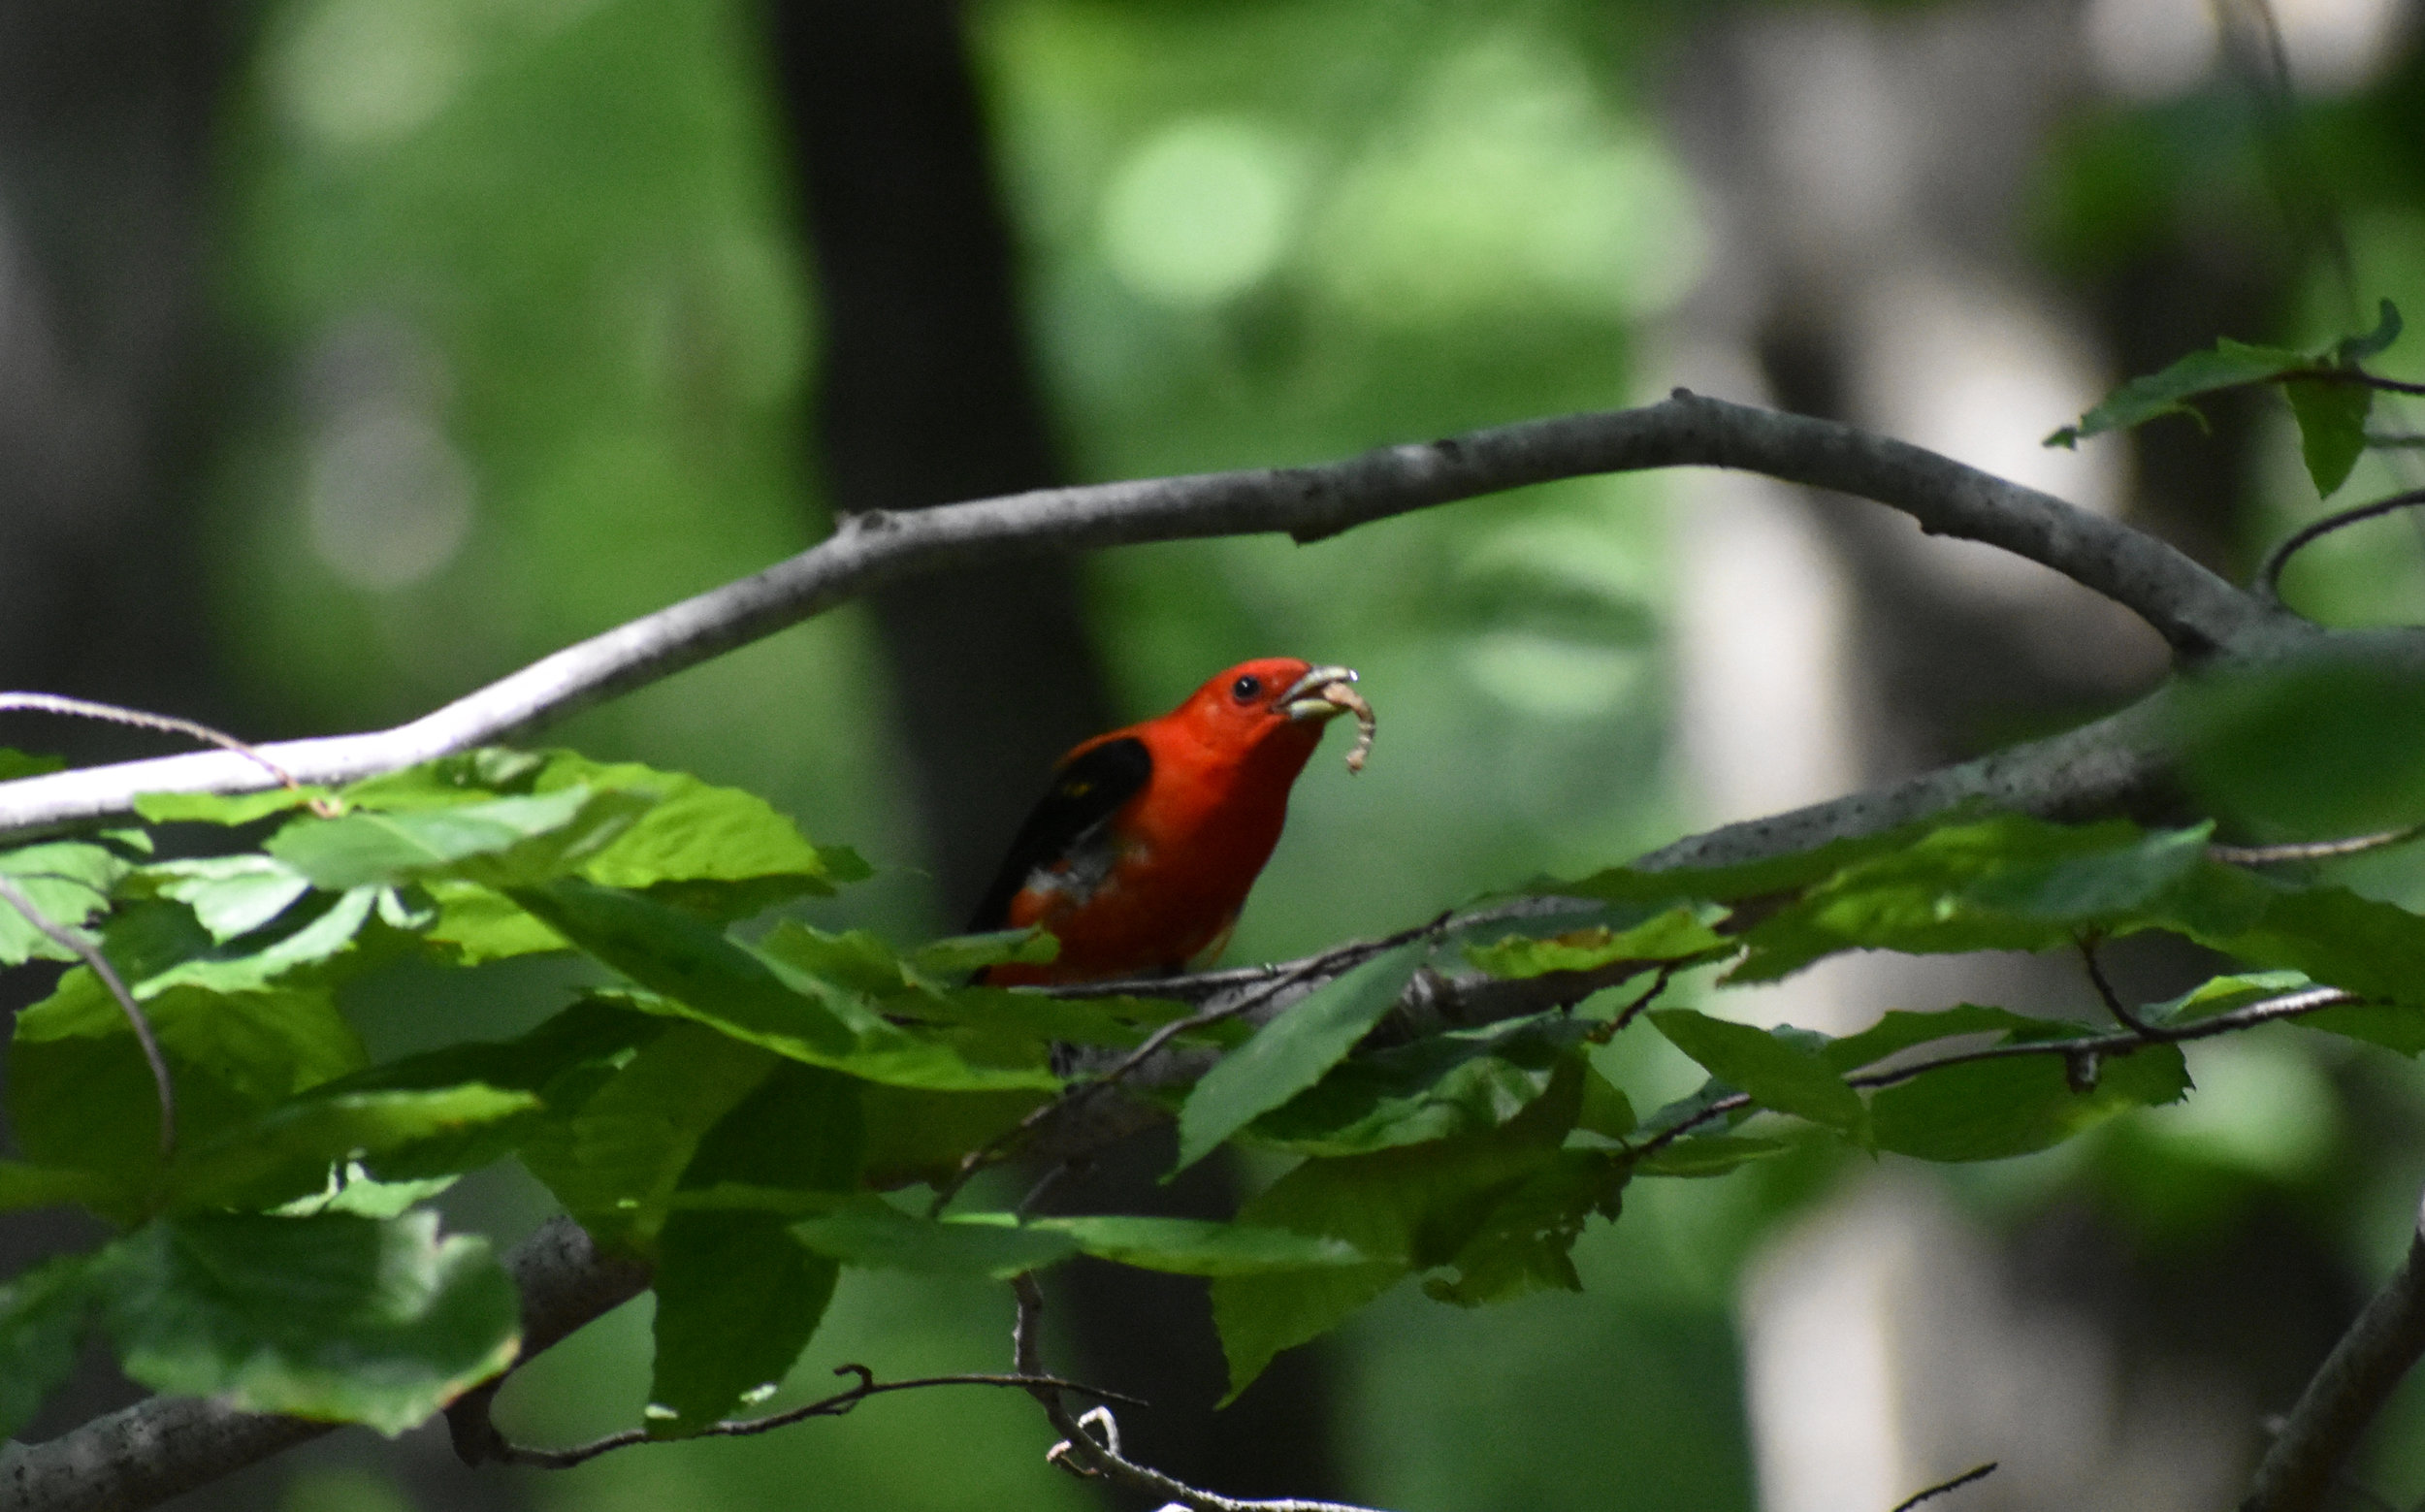 Scarlet Tanager eating insect in American Beech